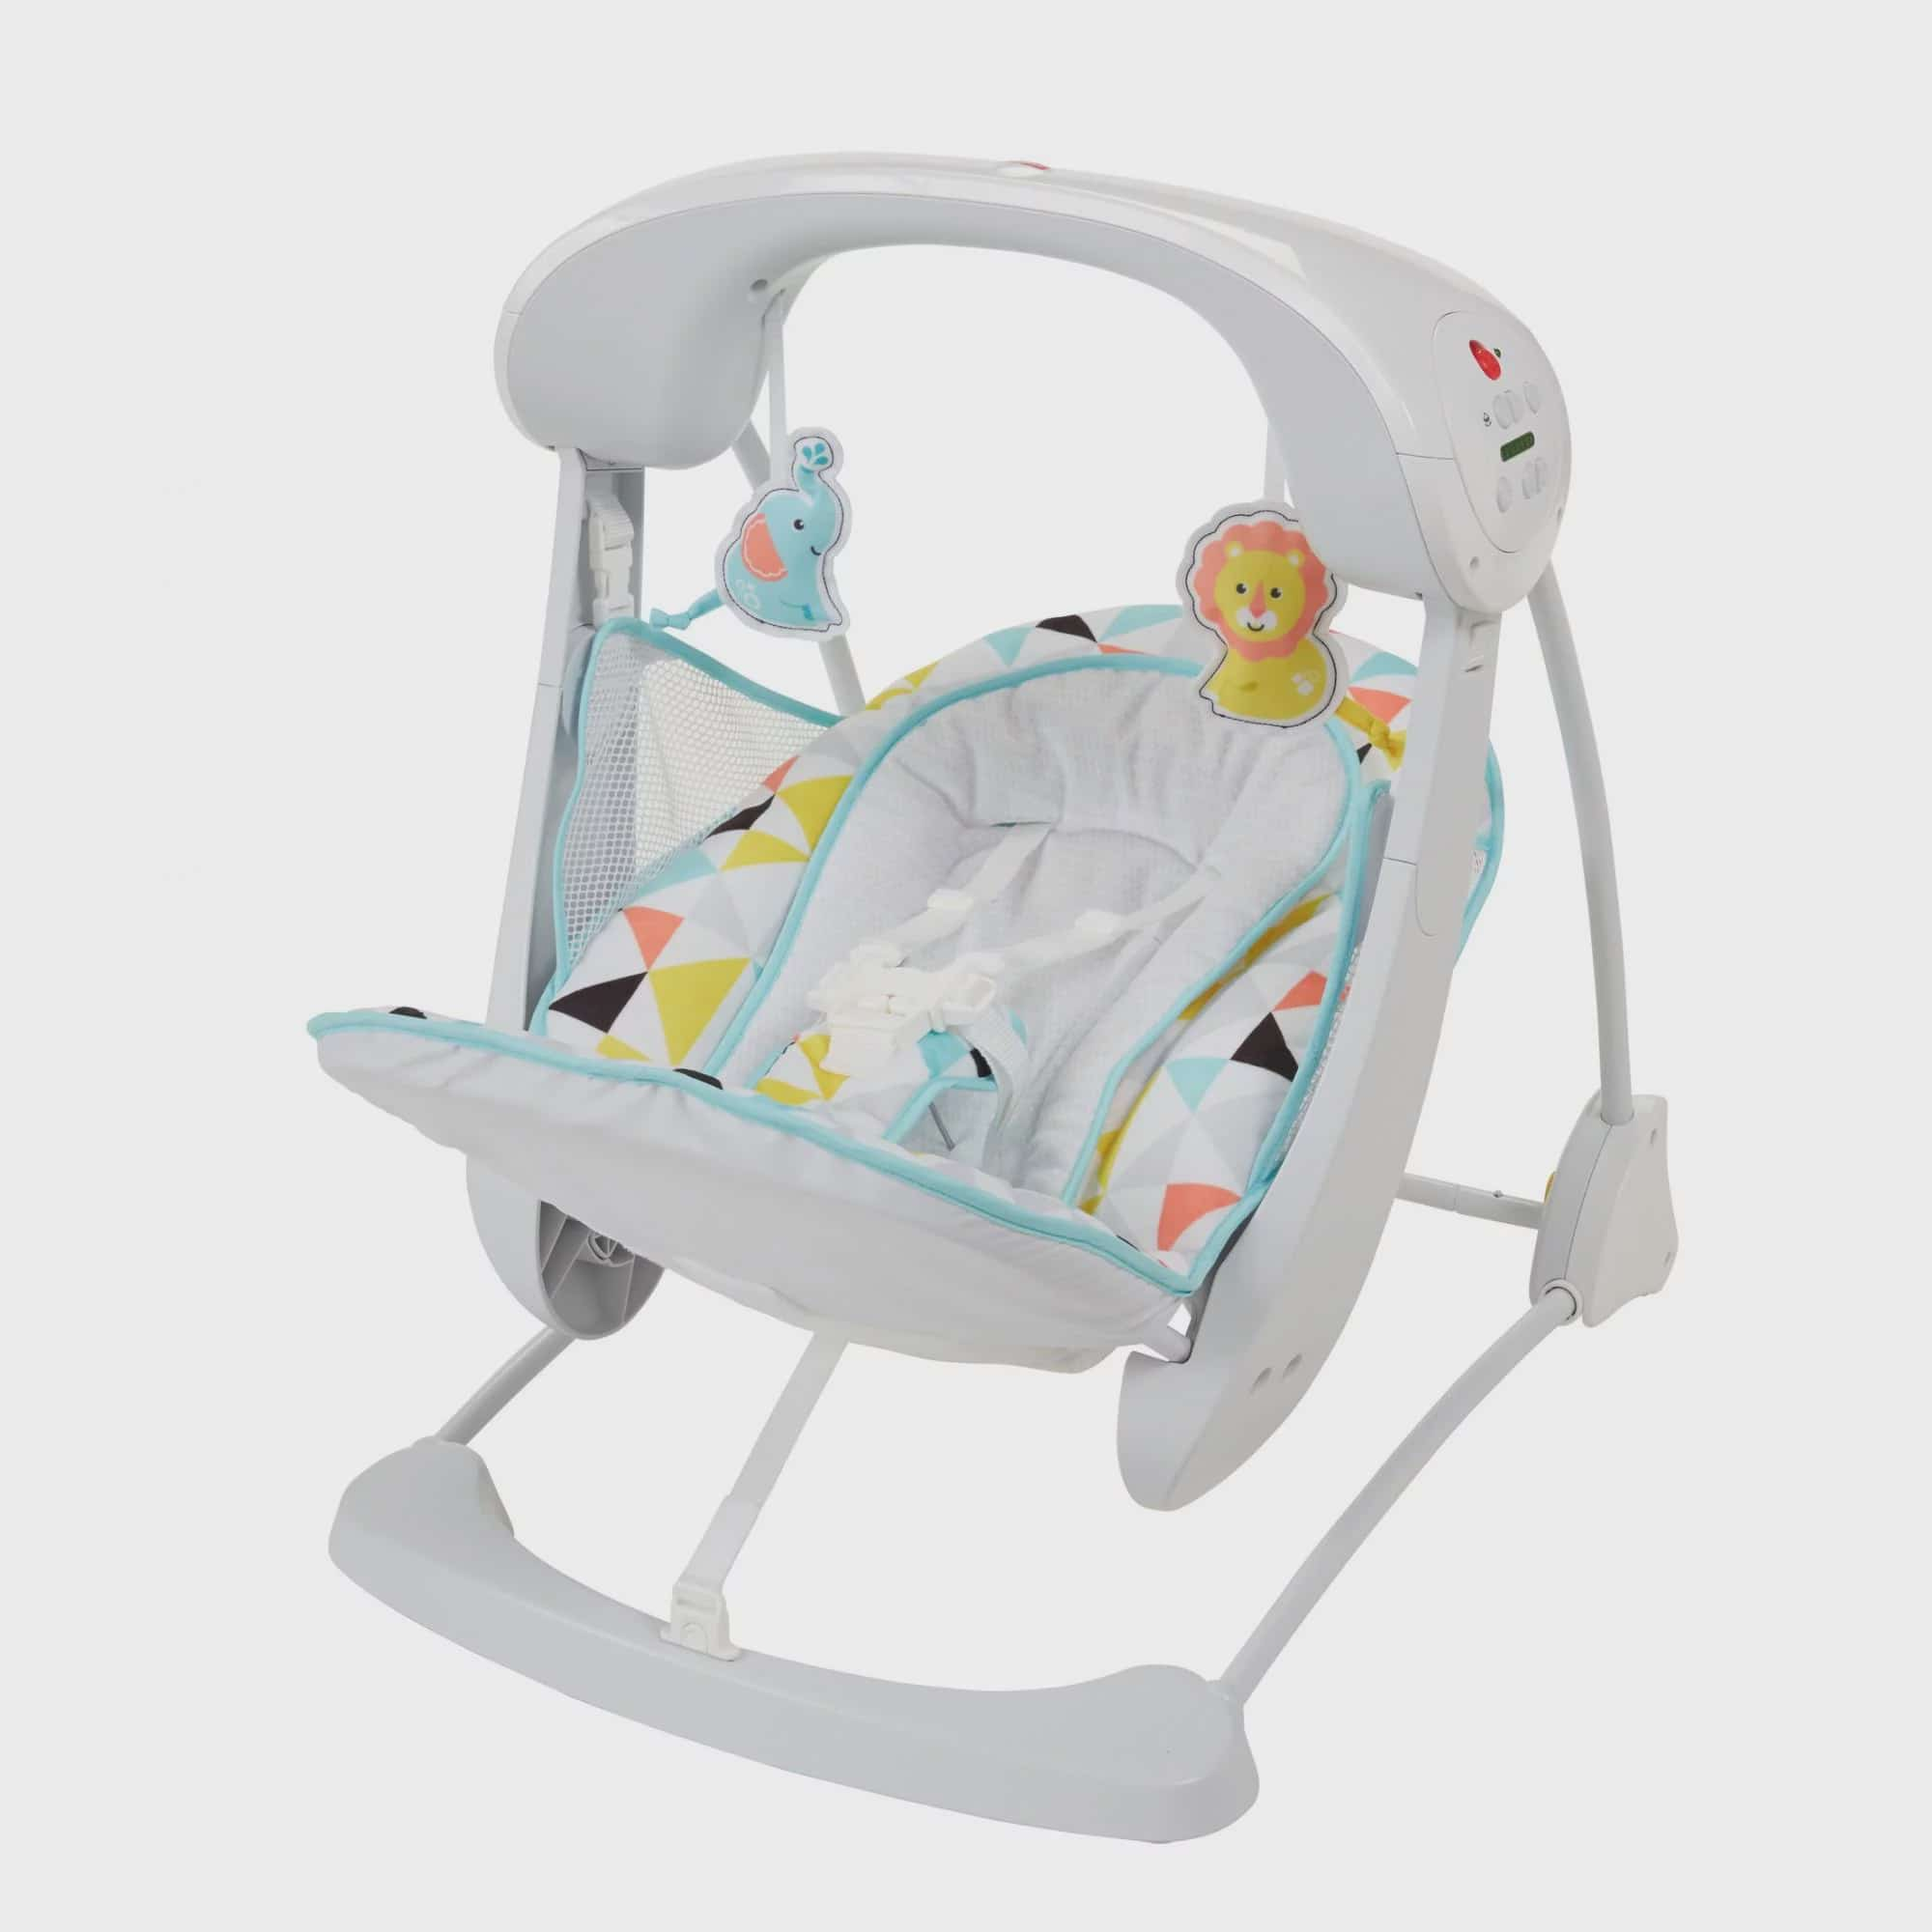 Fisher Price Deluxe Take-Along Swing & Seat by Fisher-Price